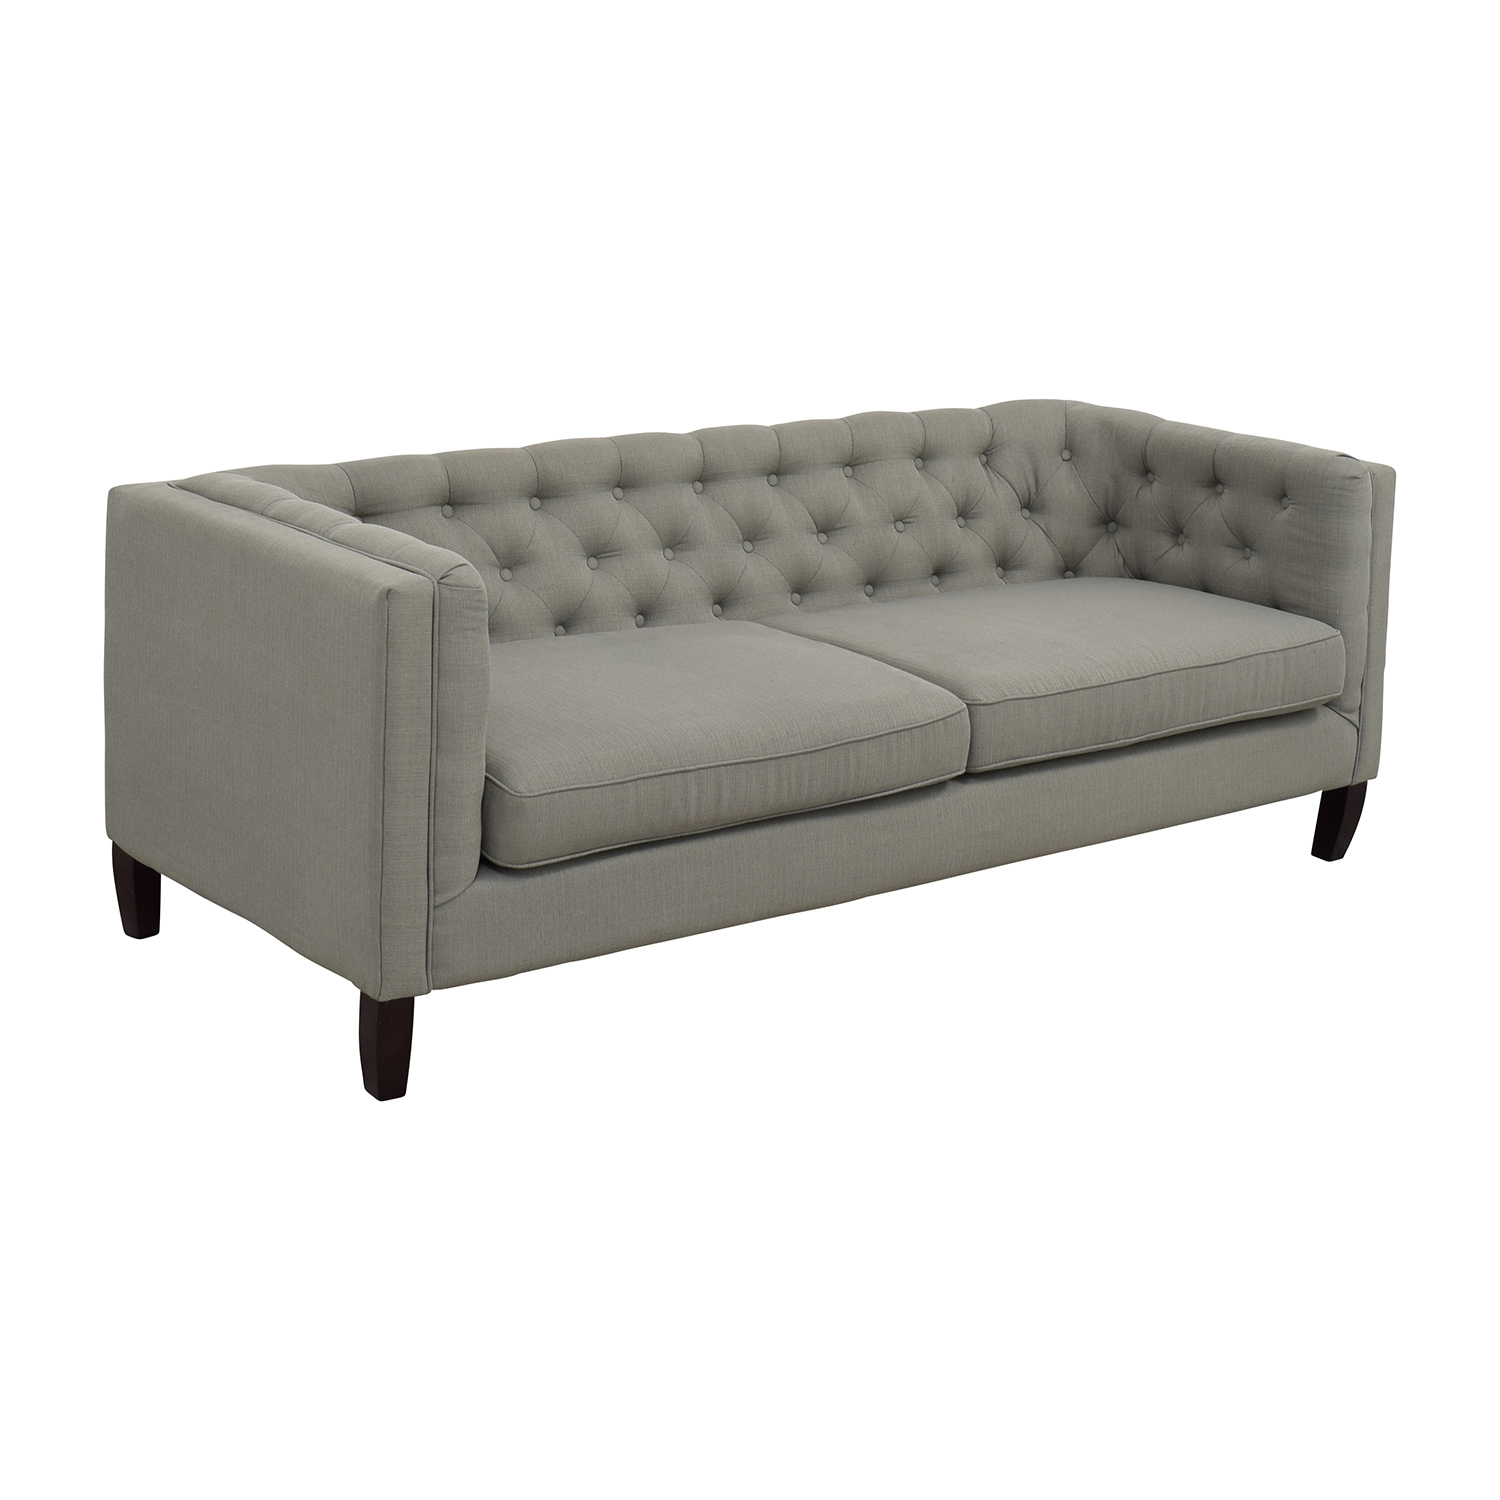 Sofaland Glasgow Sofa World High Back Two Seat Chesterfield Leather Uk Rattan And